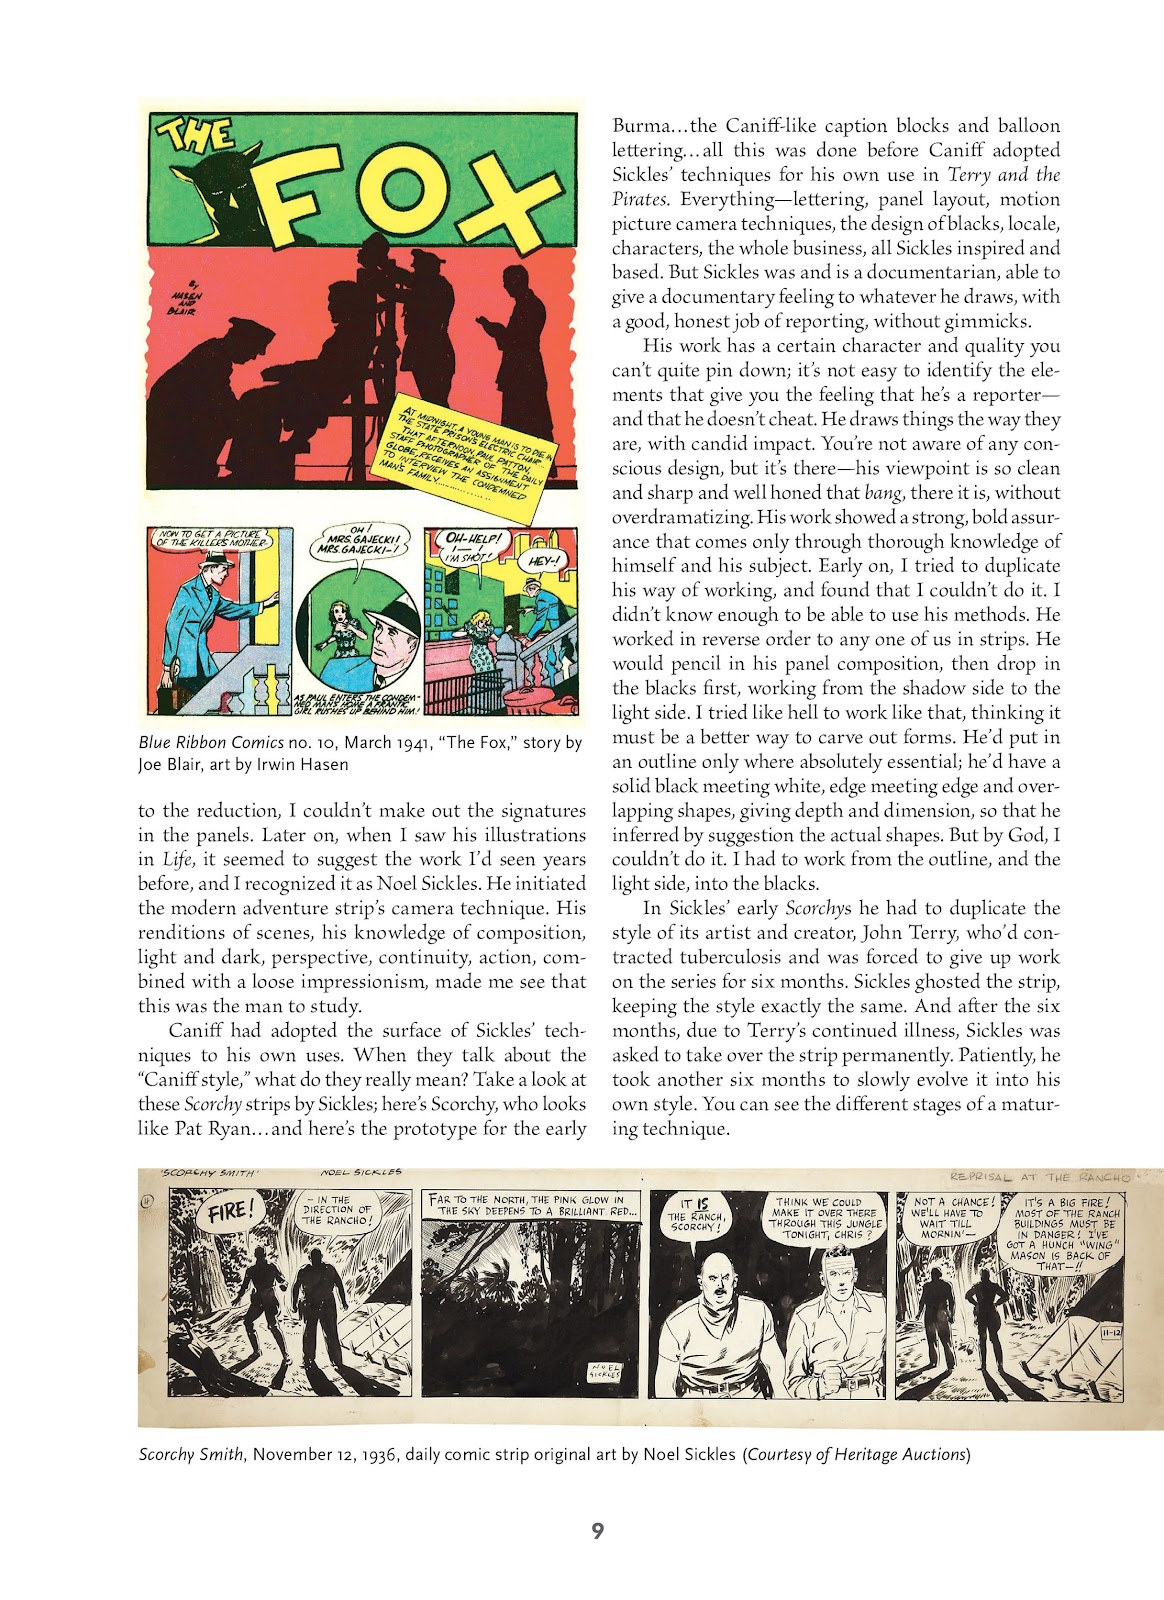 Read online Setting the Standard: Comics by Alex Toth 1952-1954 comic -  Issue # TPB (Part 1) - 8